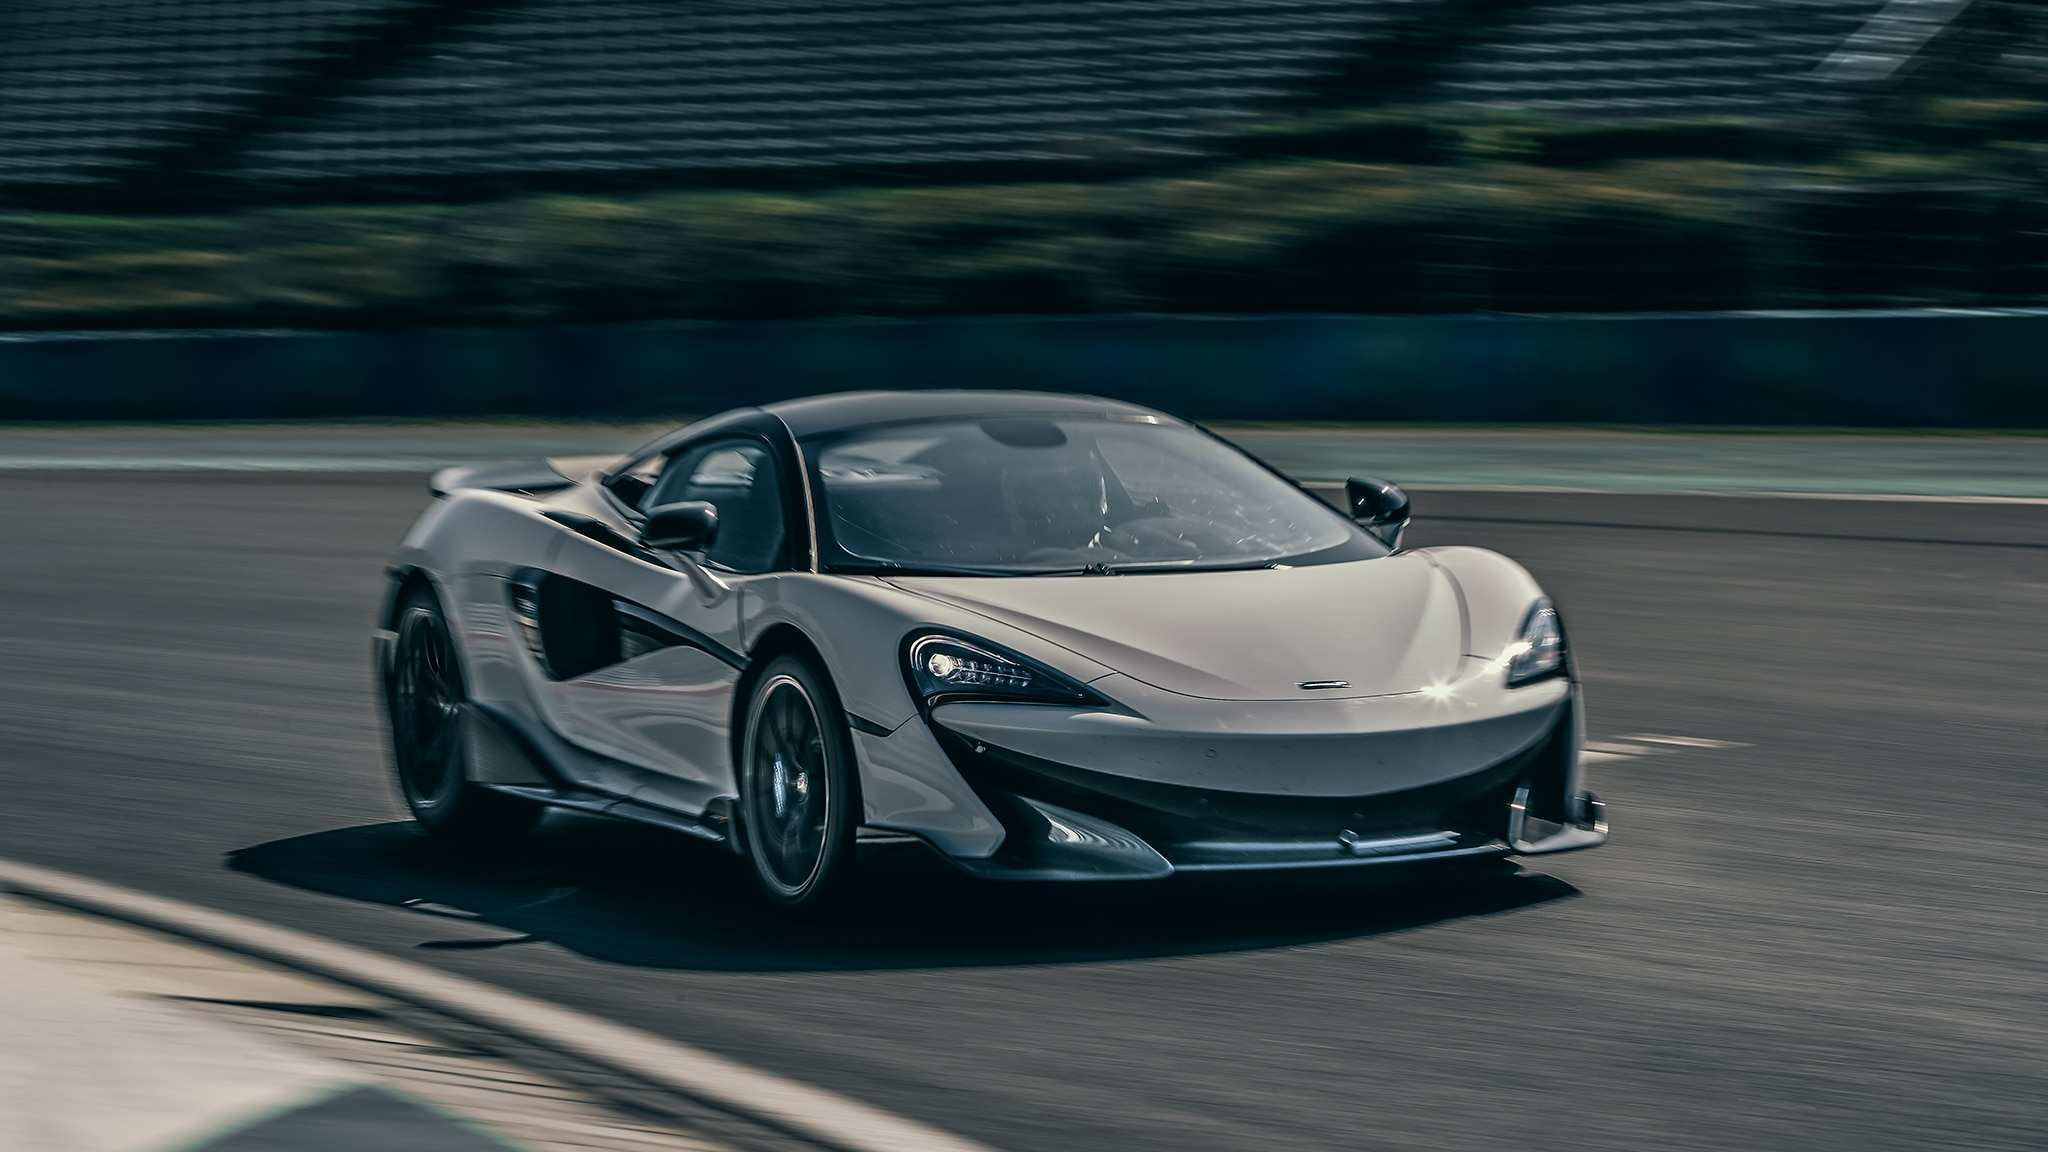 14 Concept of 2019 Mclaren 600Lt Release with 2019 Mclaren 600Lt